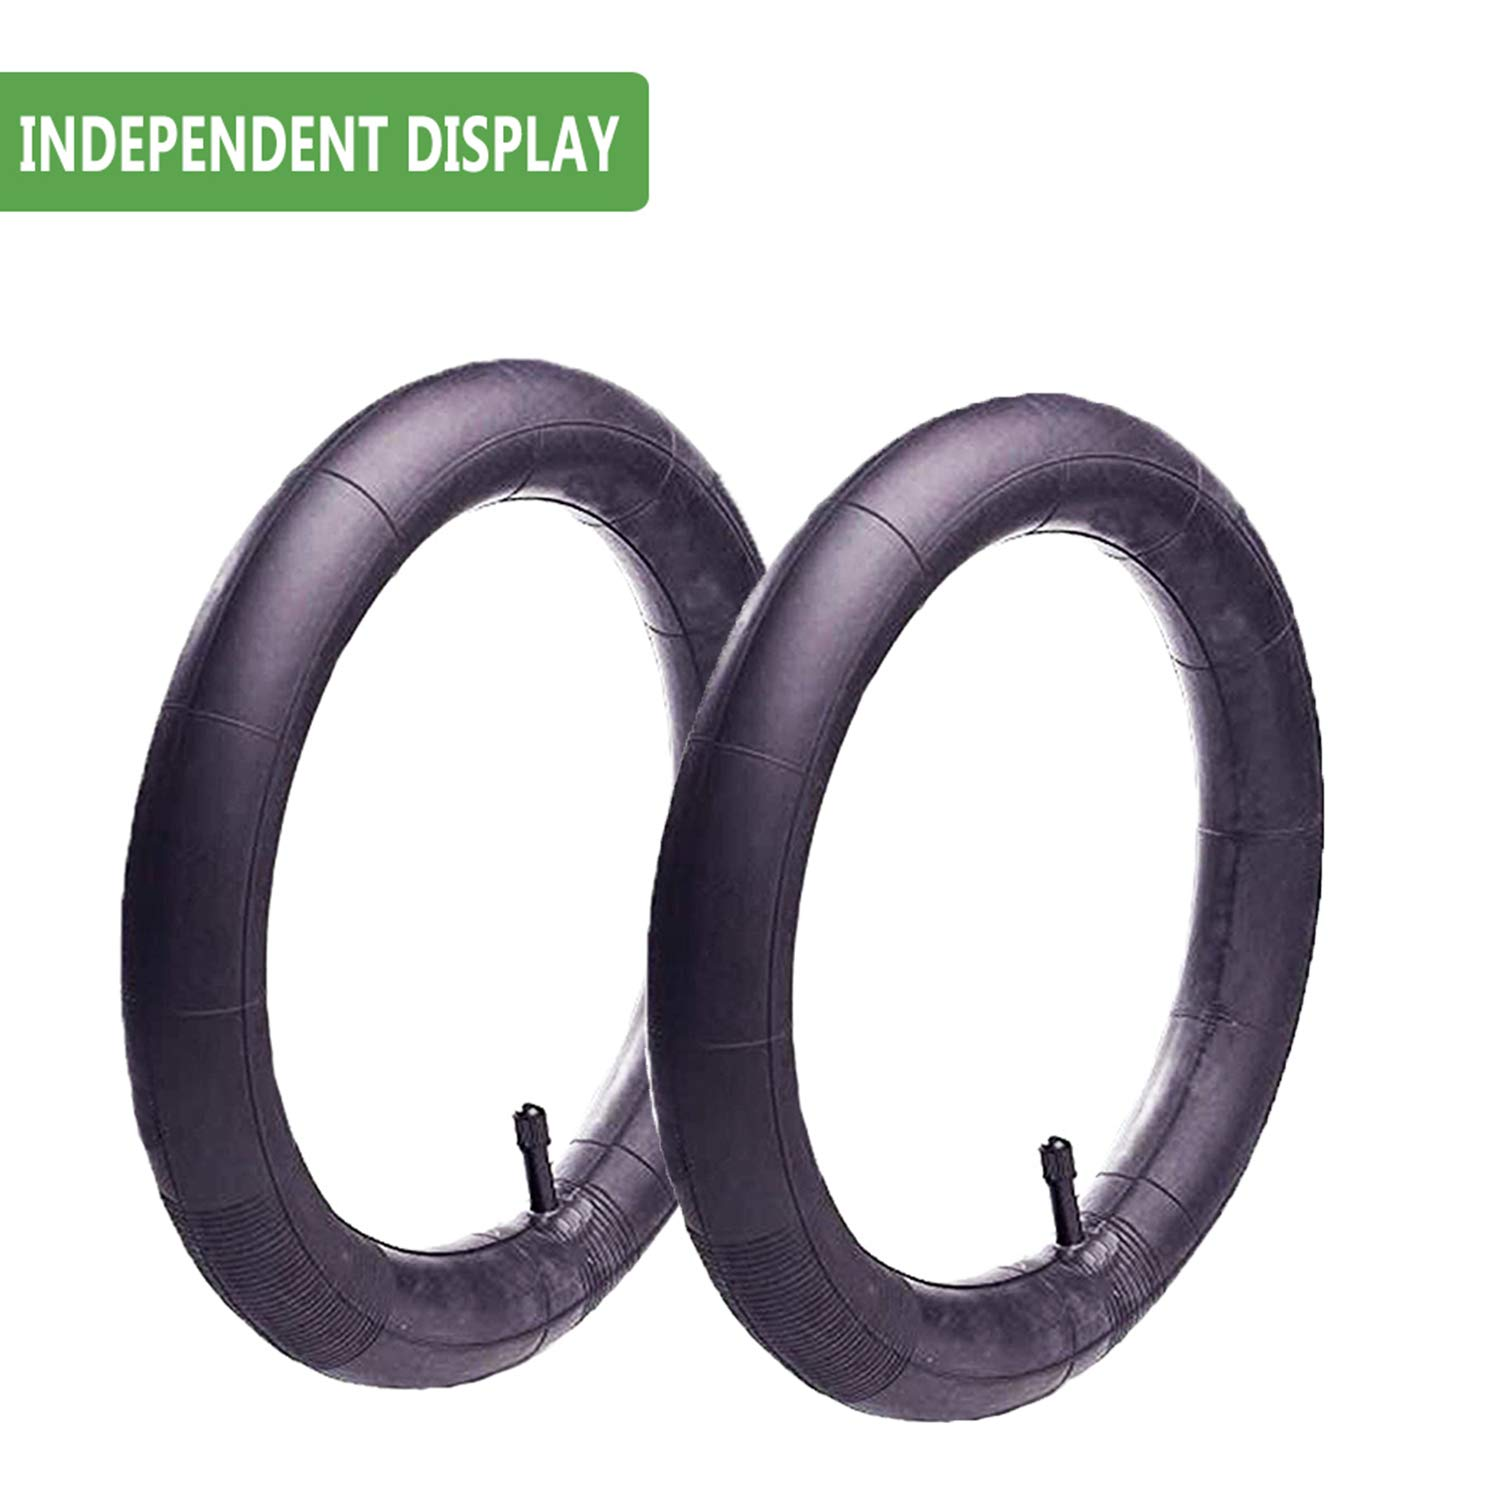 16'' x 1.75/2.15 Back Wheel Replacement Inner Tubes (2-Pack) for BoB Revolution SE/Pro/Flex/SU/Ironman - Made from BPA/Latex Free Premium Quality Butyl Rubber by YIKUSO (Image #4)